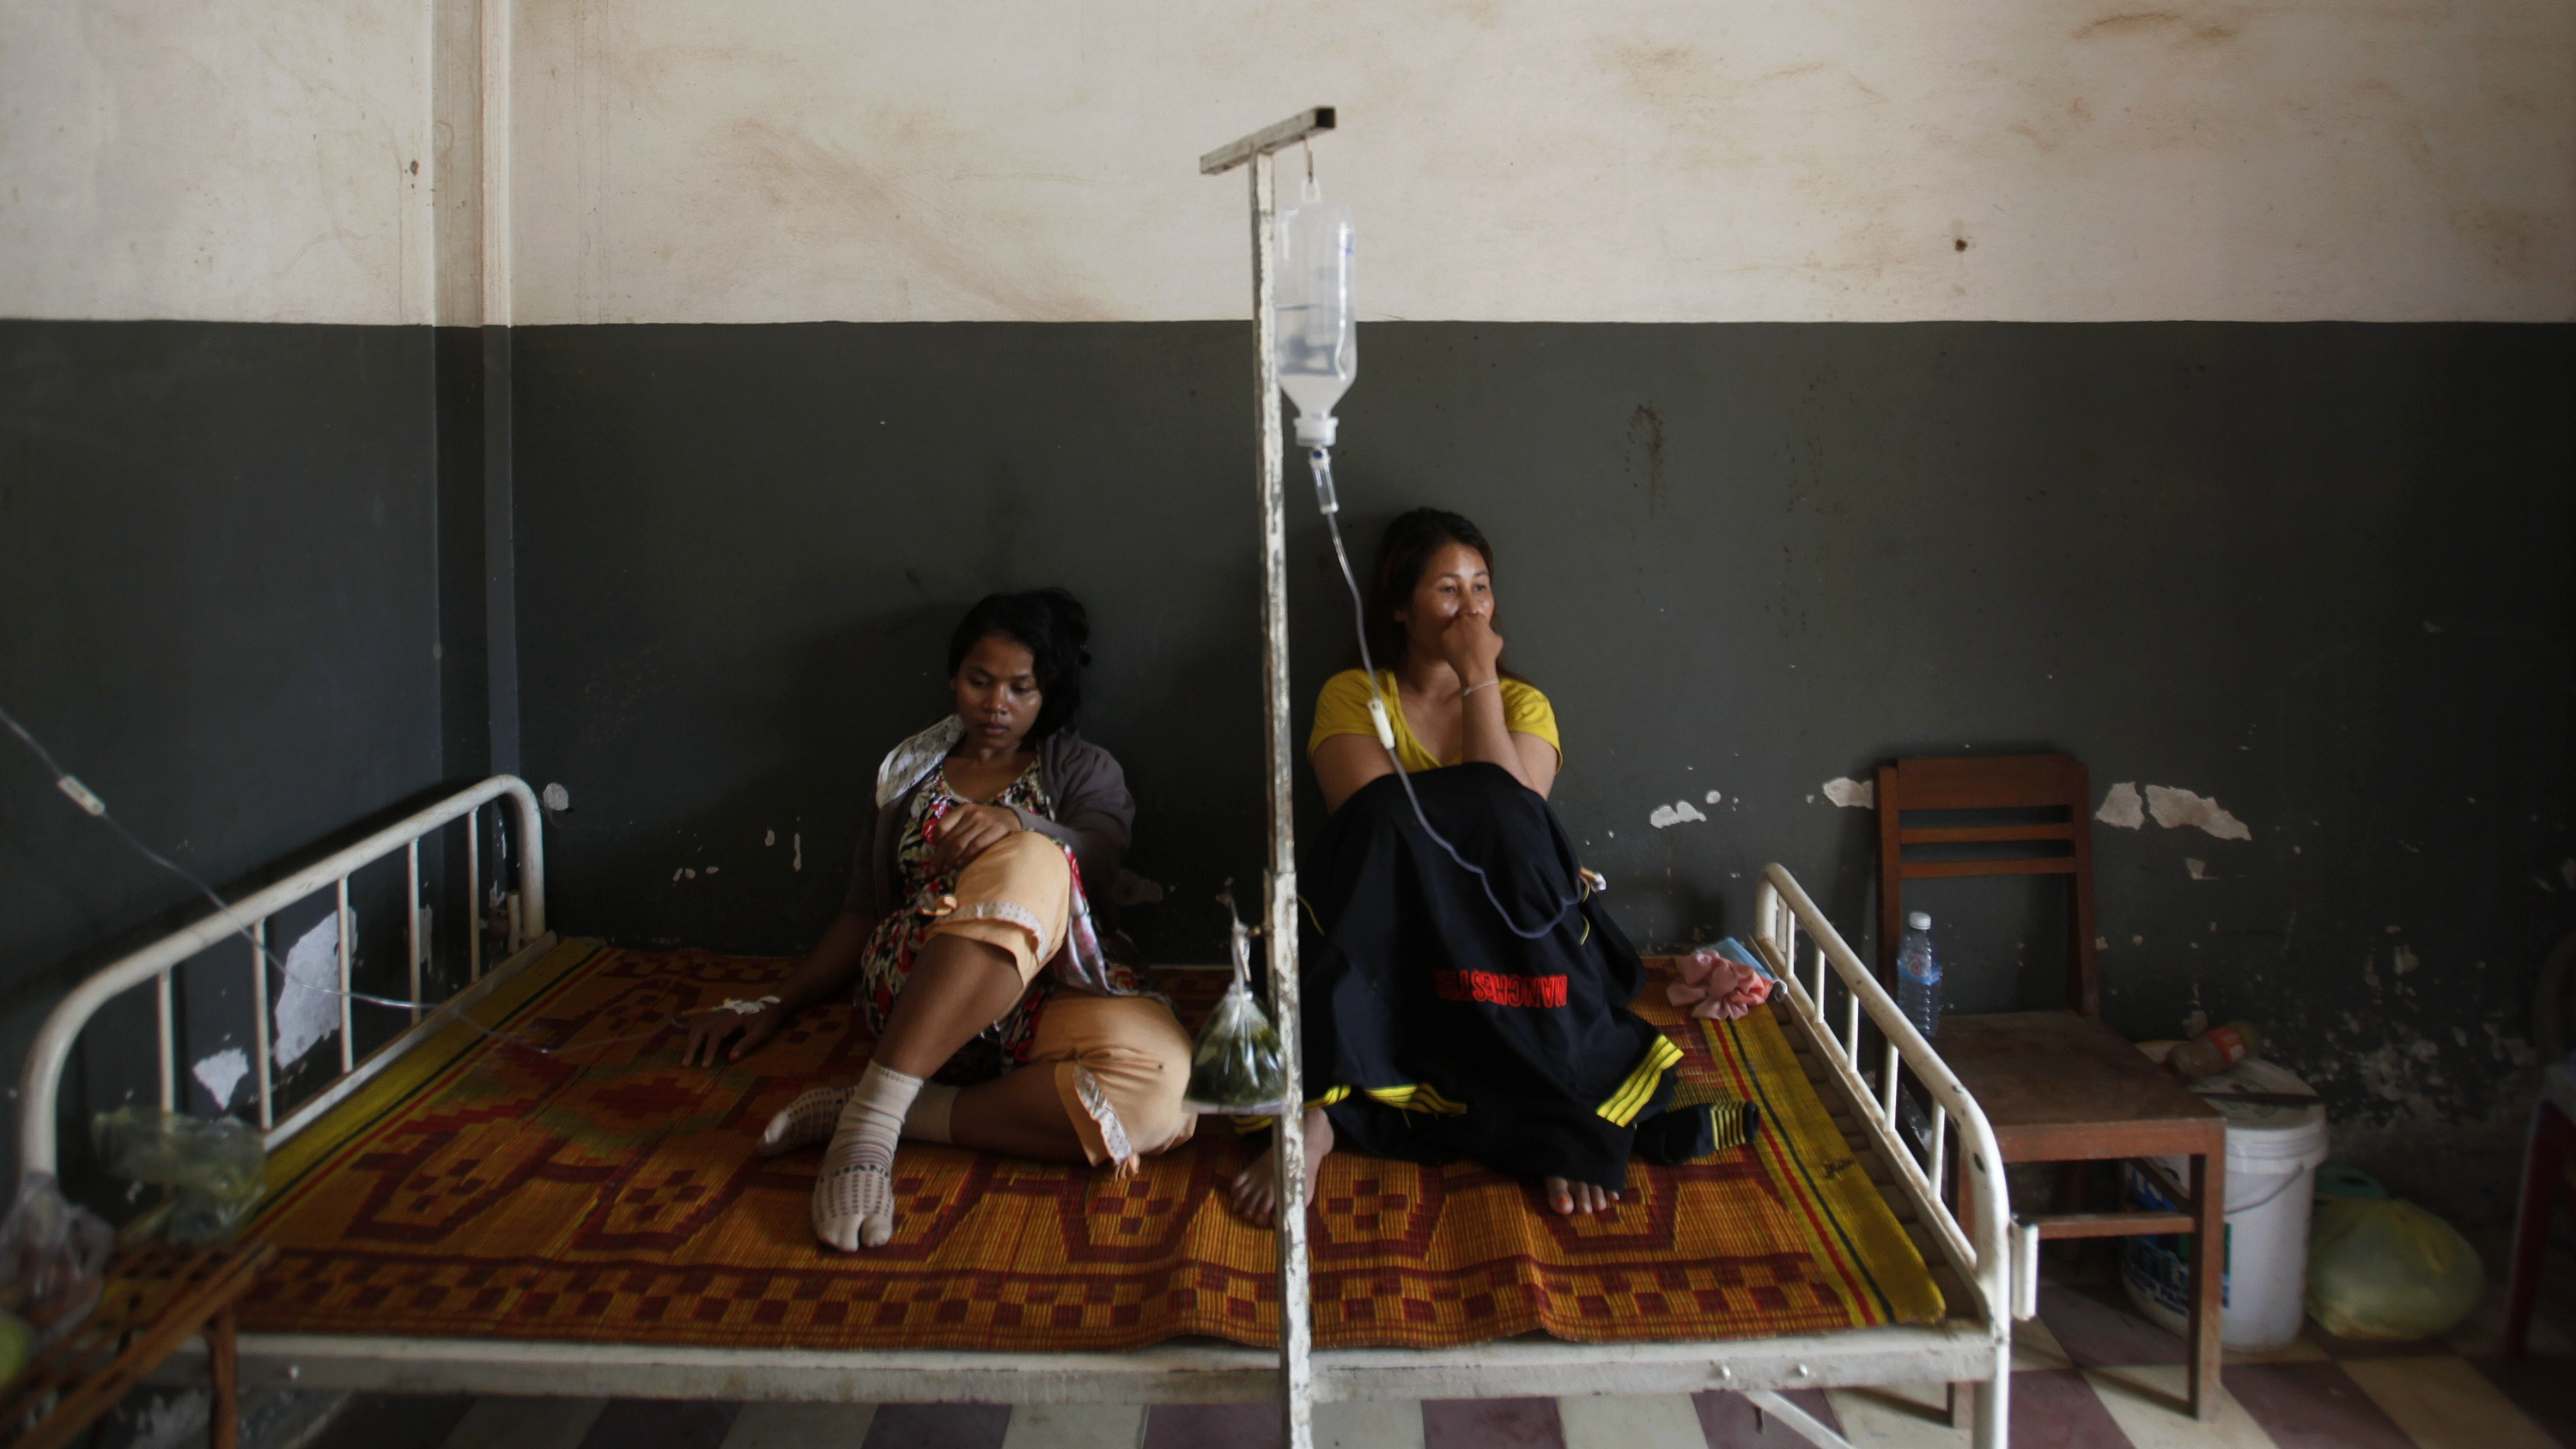 Garment workers from the Six Plus Industry Co. Ltd factory recover at a hospital after fainting at their workplace in Kandal province July 31, 2014. Around 200 workers from the factory producing clothing for Adidas collapsed at work on Thursday morning, said the Free Trade Union (FTU). Another 150 workers fainted on July 26 at the same factory, according to the union. REUTERS/Samrang Pring